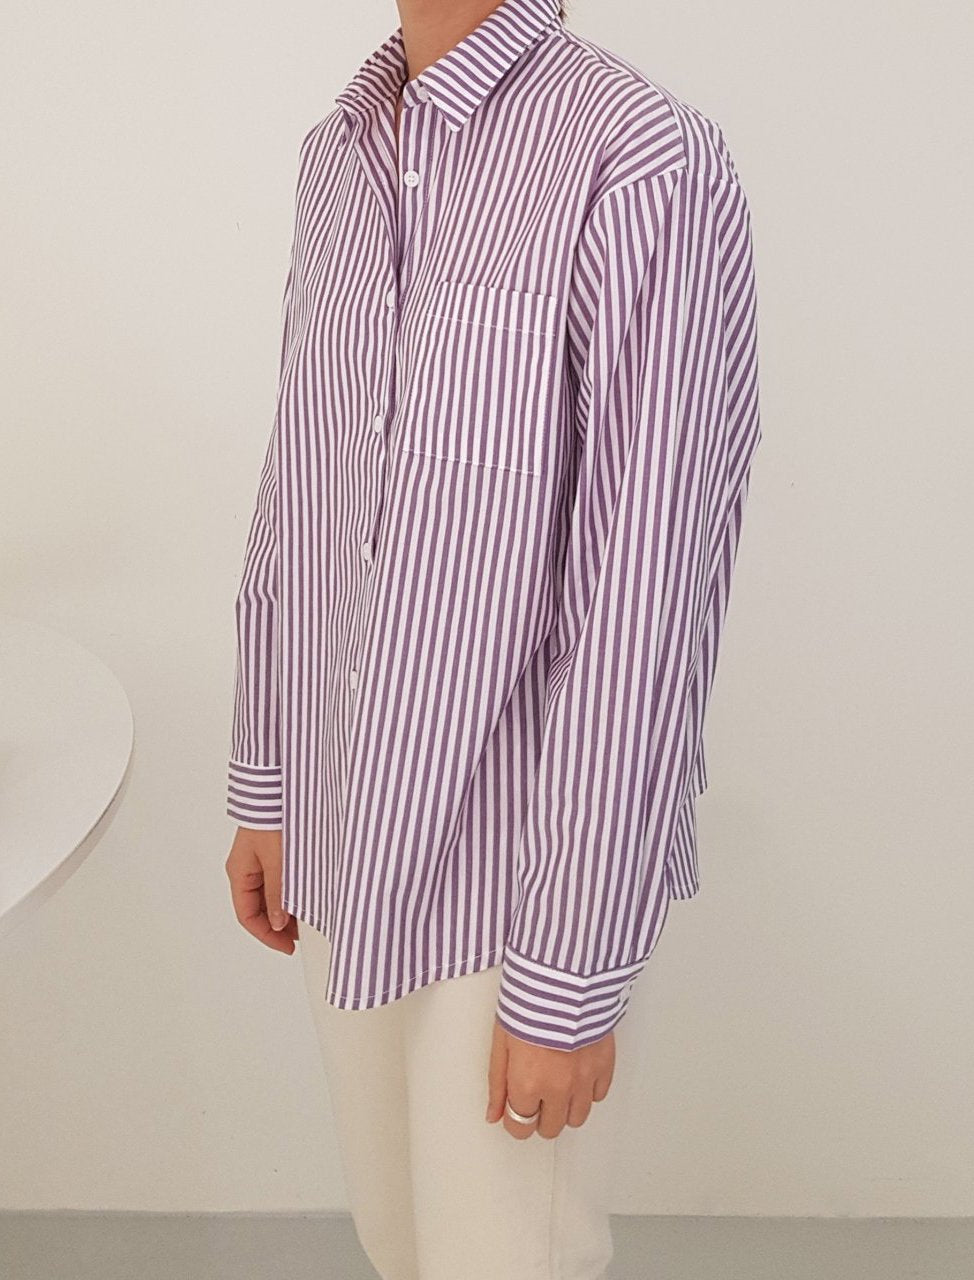 Striped Shirt Outfits - LOCOLIPS